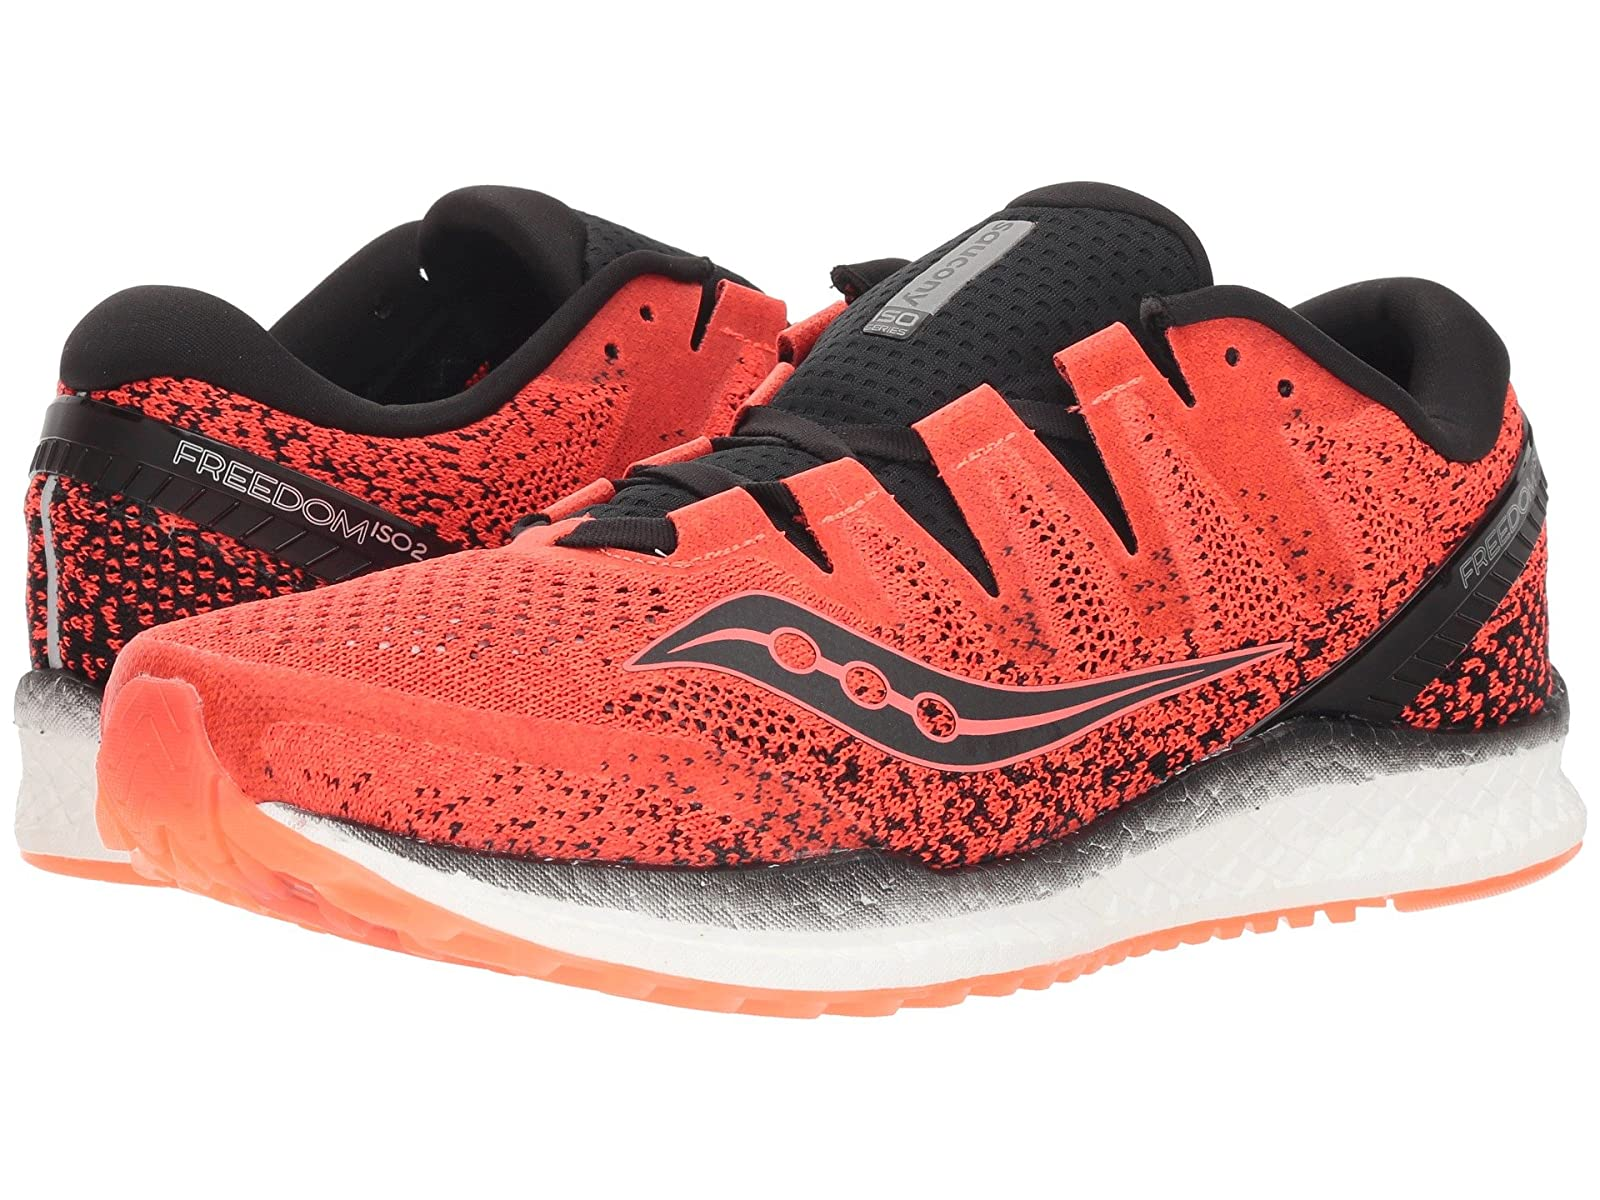 Saucony Freedom ISO²Atmospheric grades have affordable shoes